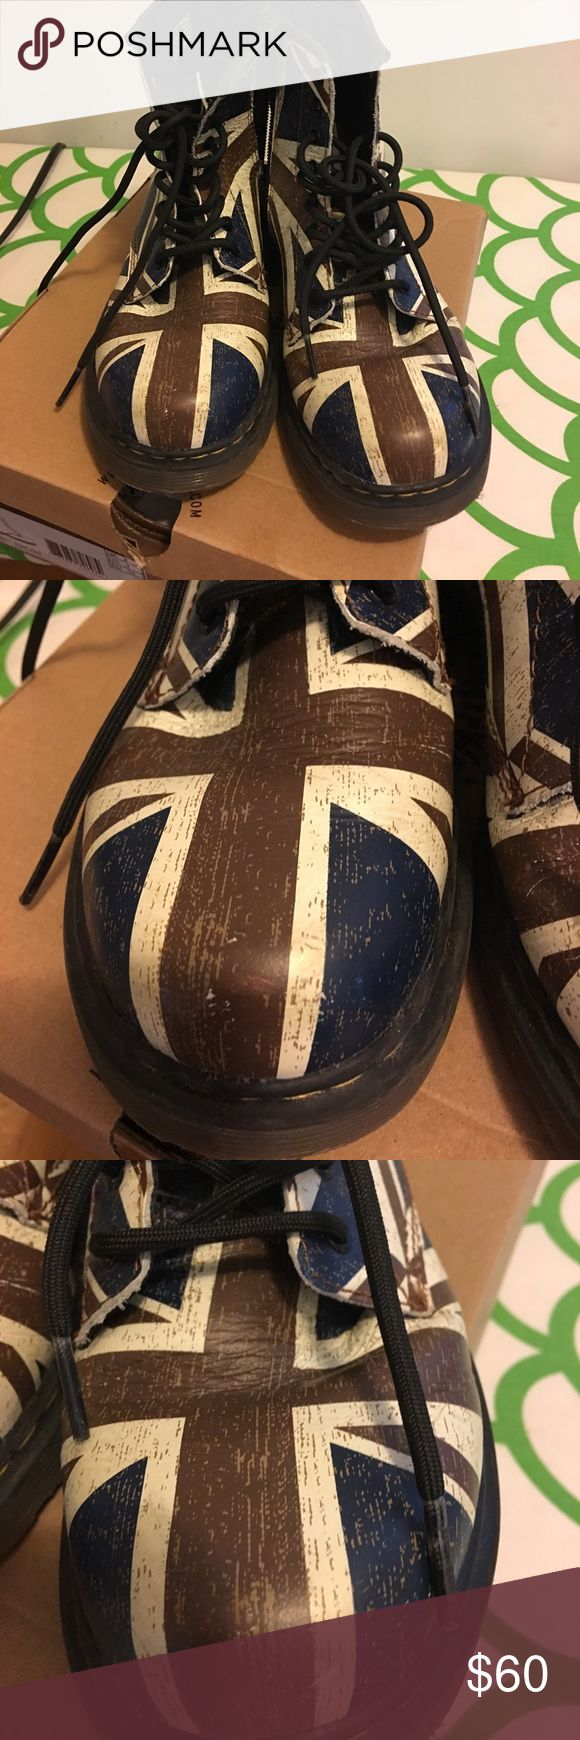 Dr Martin Union Jack lace up boots size 4 The ultimate boots for the offspring of the glorious 80's! Barely worn with minor scuffing shown in photos. Distressed design. Side zip for easy access. Sorry, no box. dr martins Shoes Boots